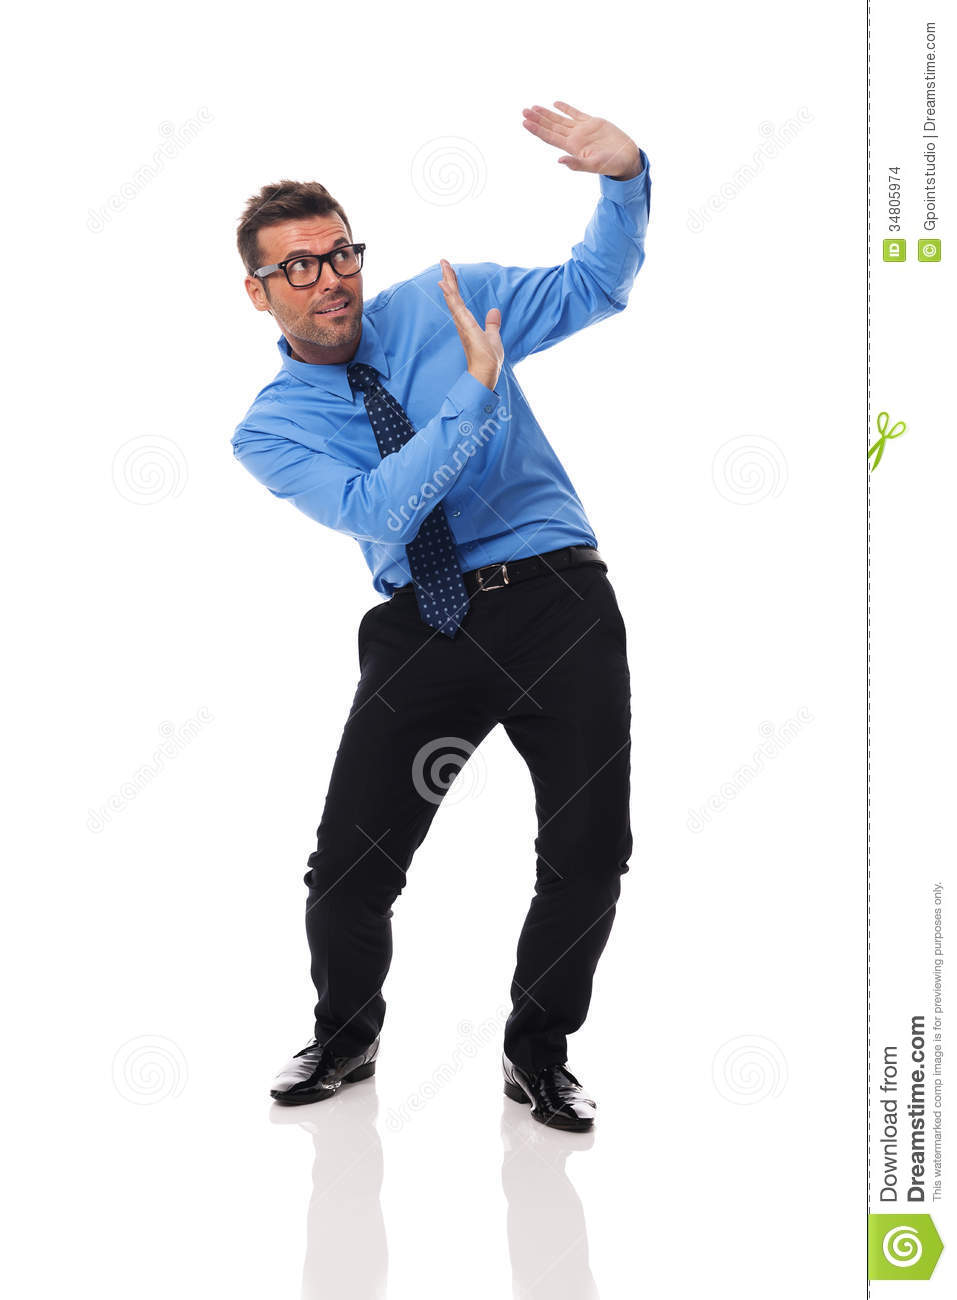 Scared man stock photo. Image of carrying, contemporary ...